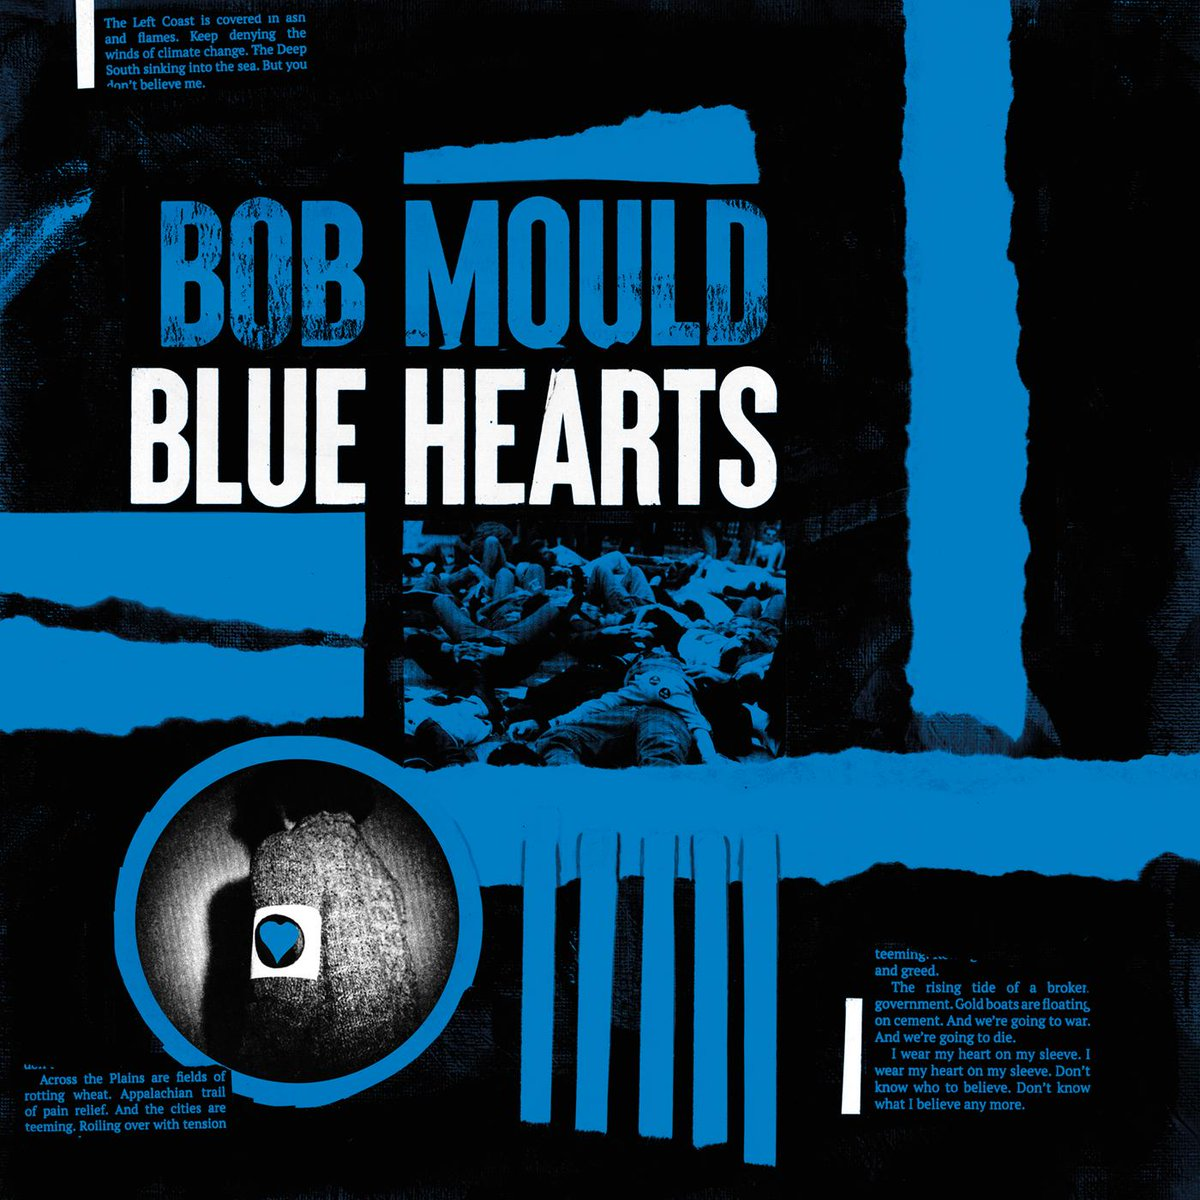 Bob Mould is a feisty kind of guy, a fact that's no secret to the fans he's acquired. americansongwriter.com/blue-hearts-bo…